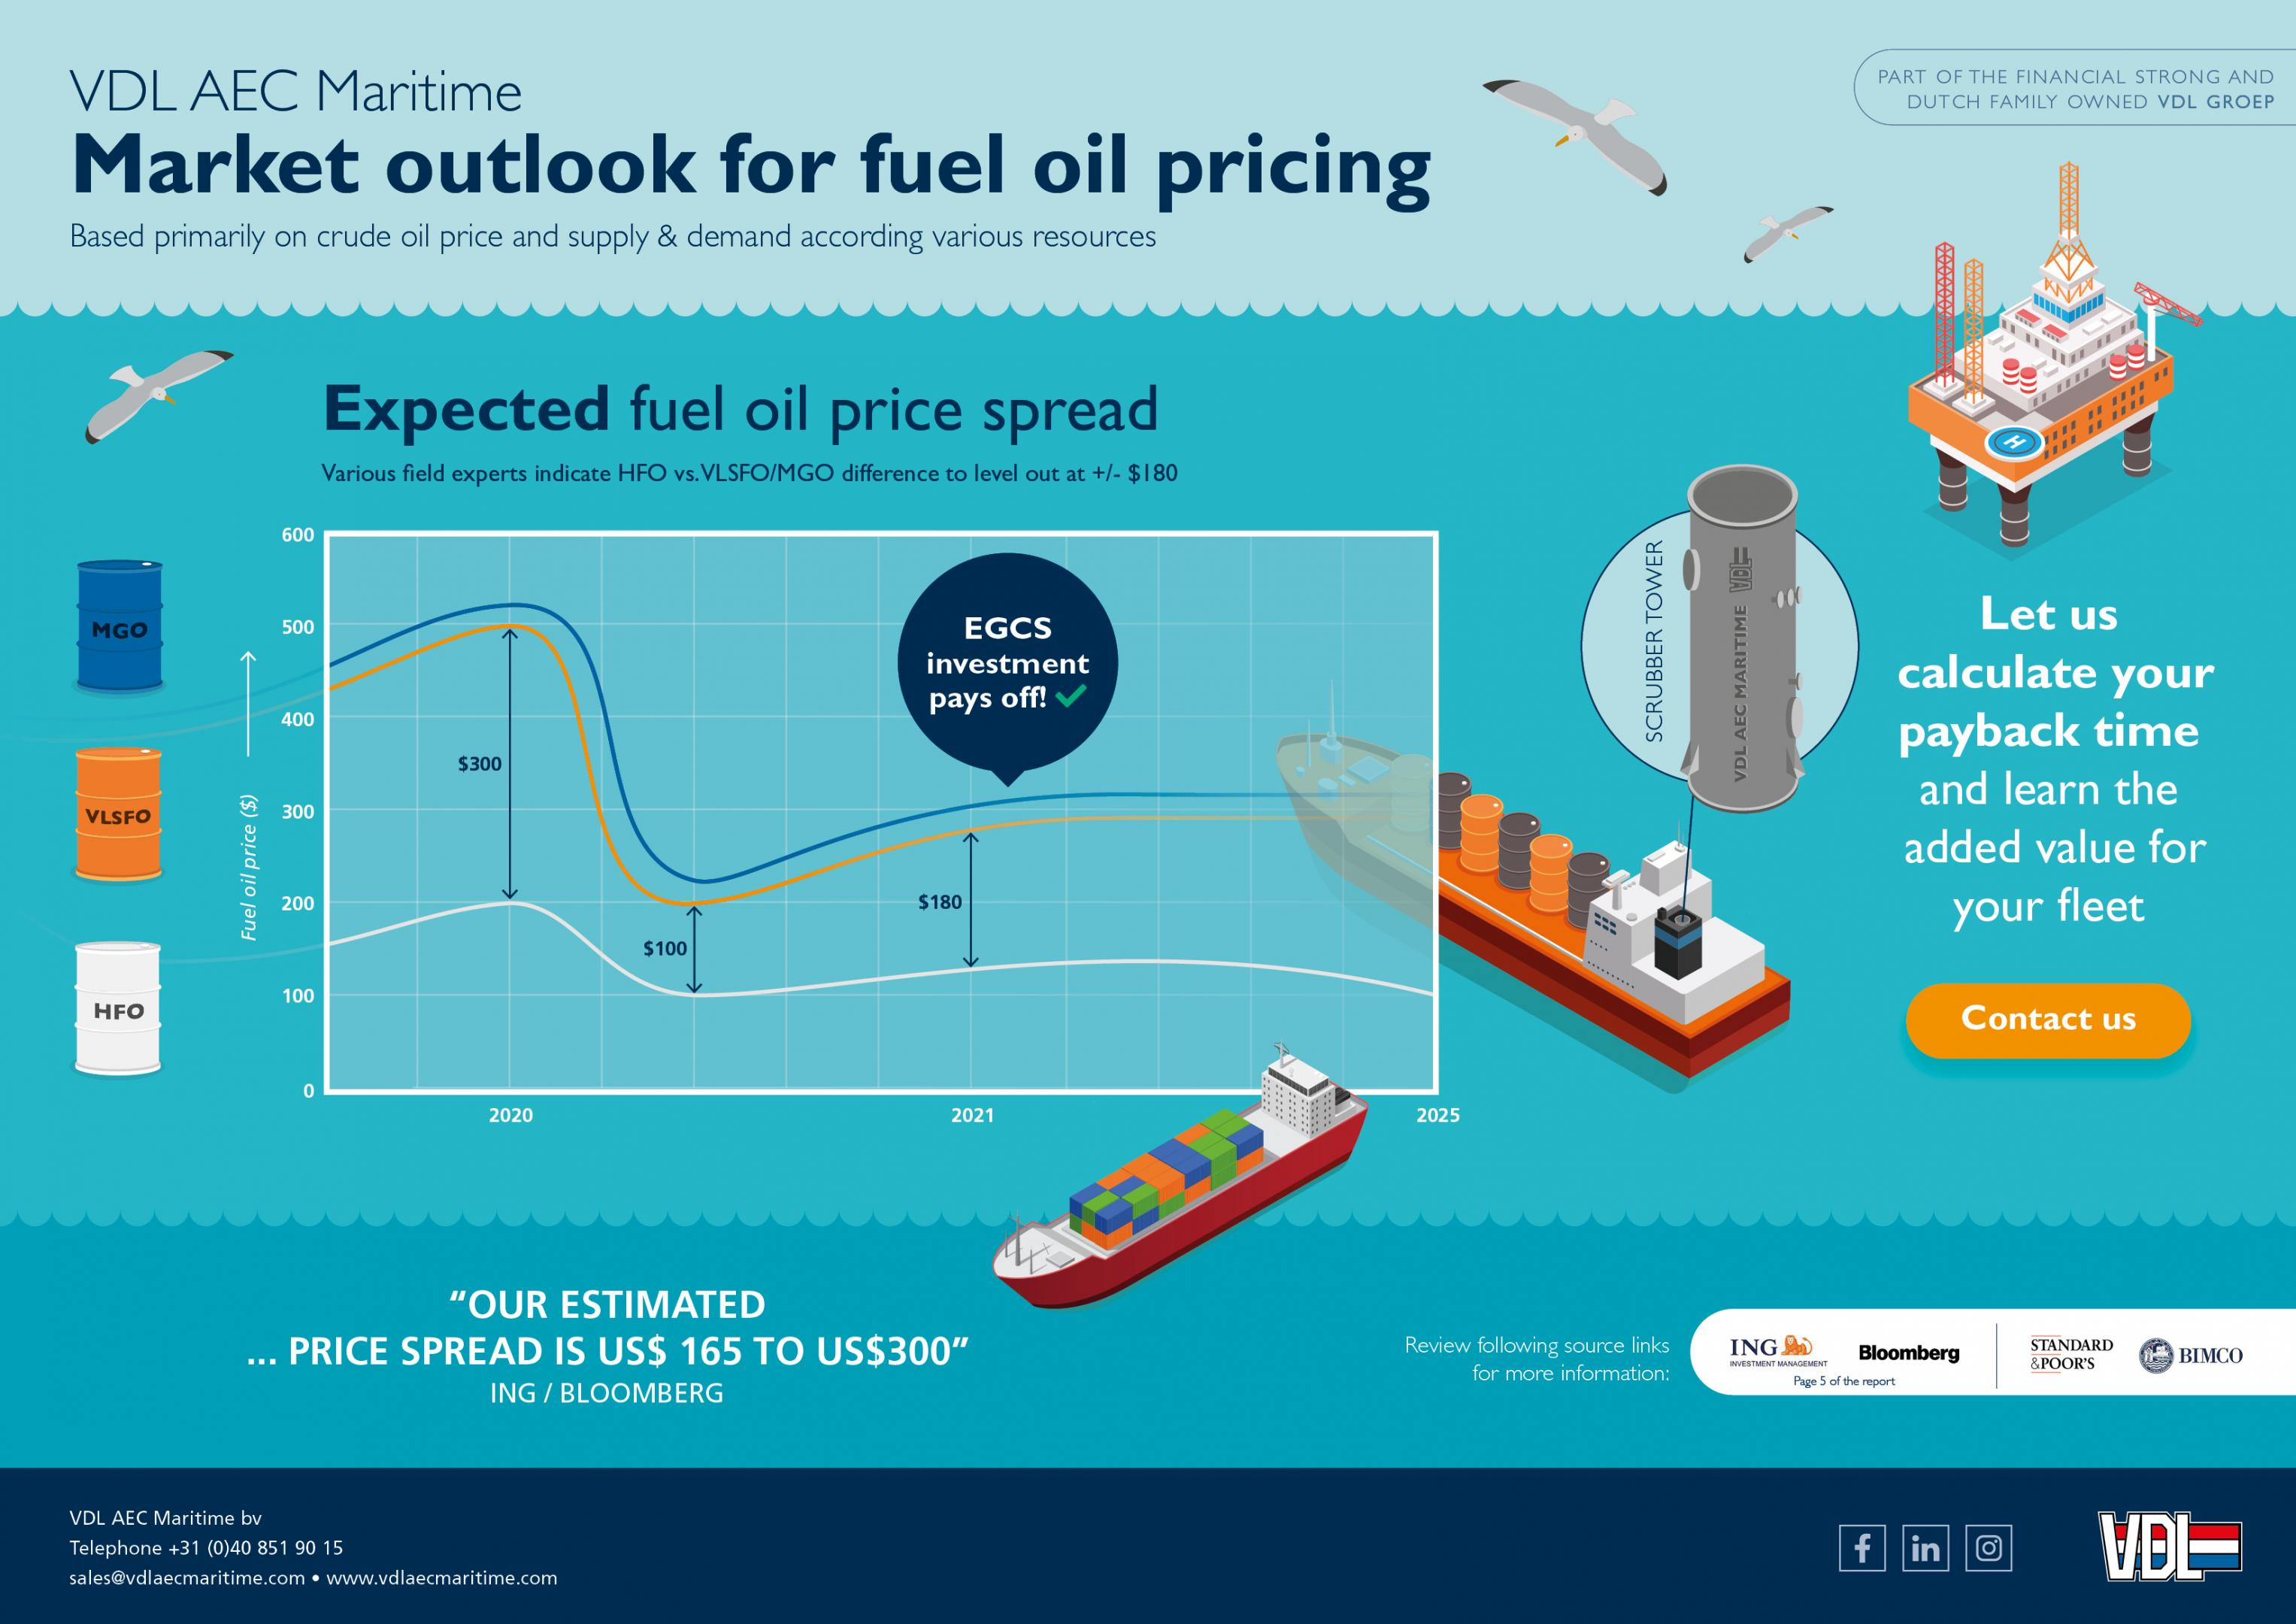 246_MAR_20002_VDL-Infographic-Market-outlook-for-fuel-oil_A3_015-ACHTERGROND.jpg